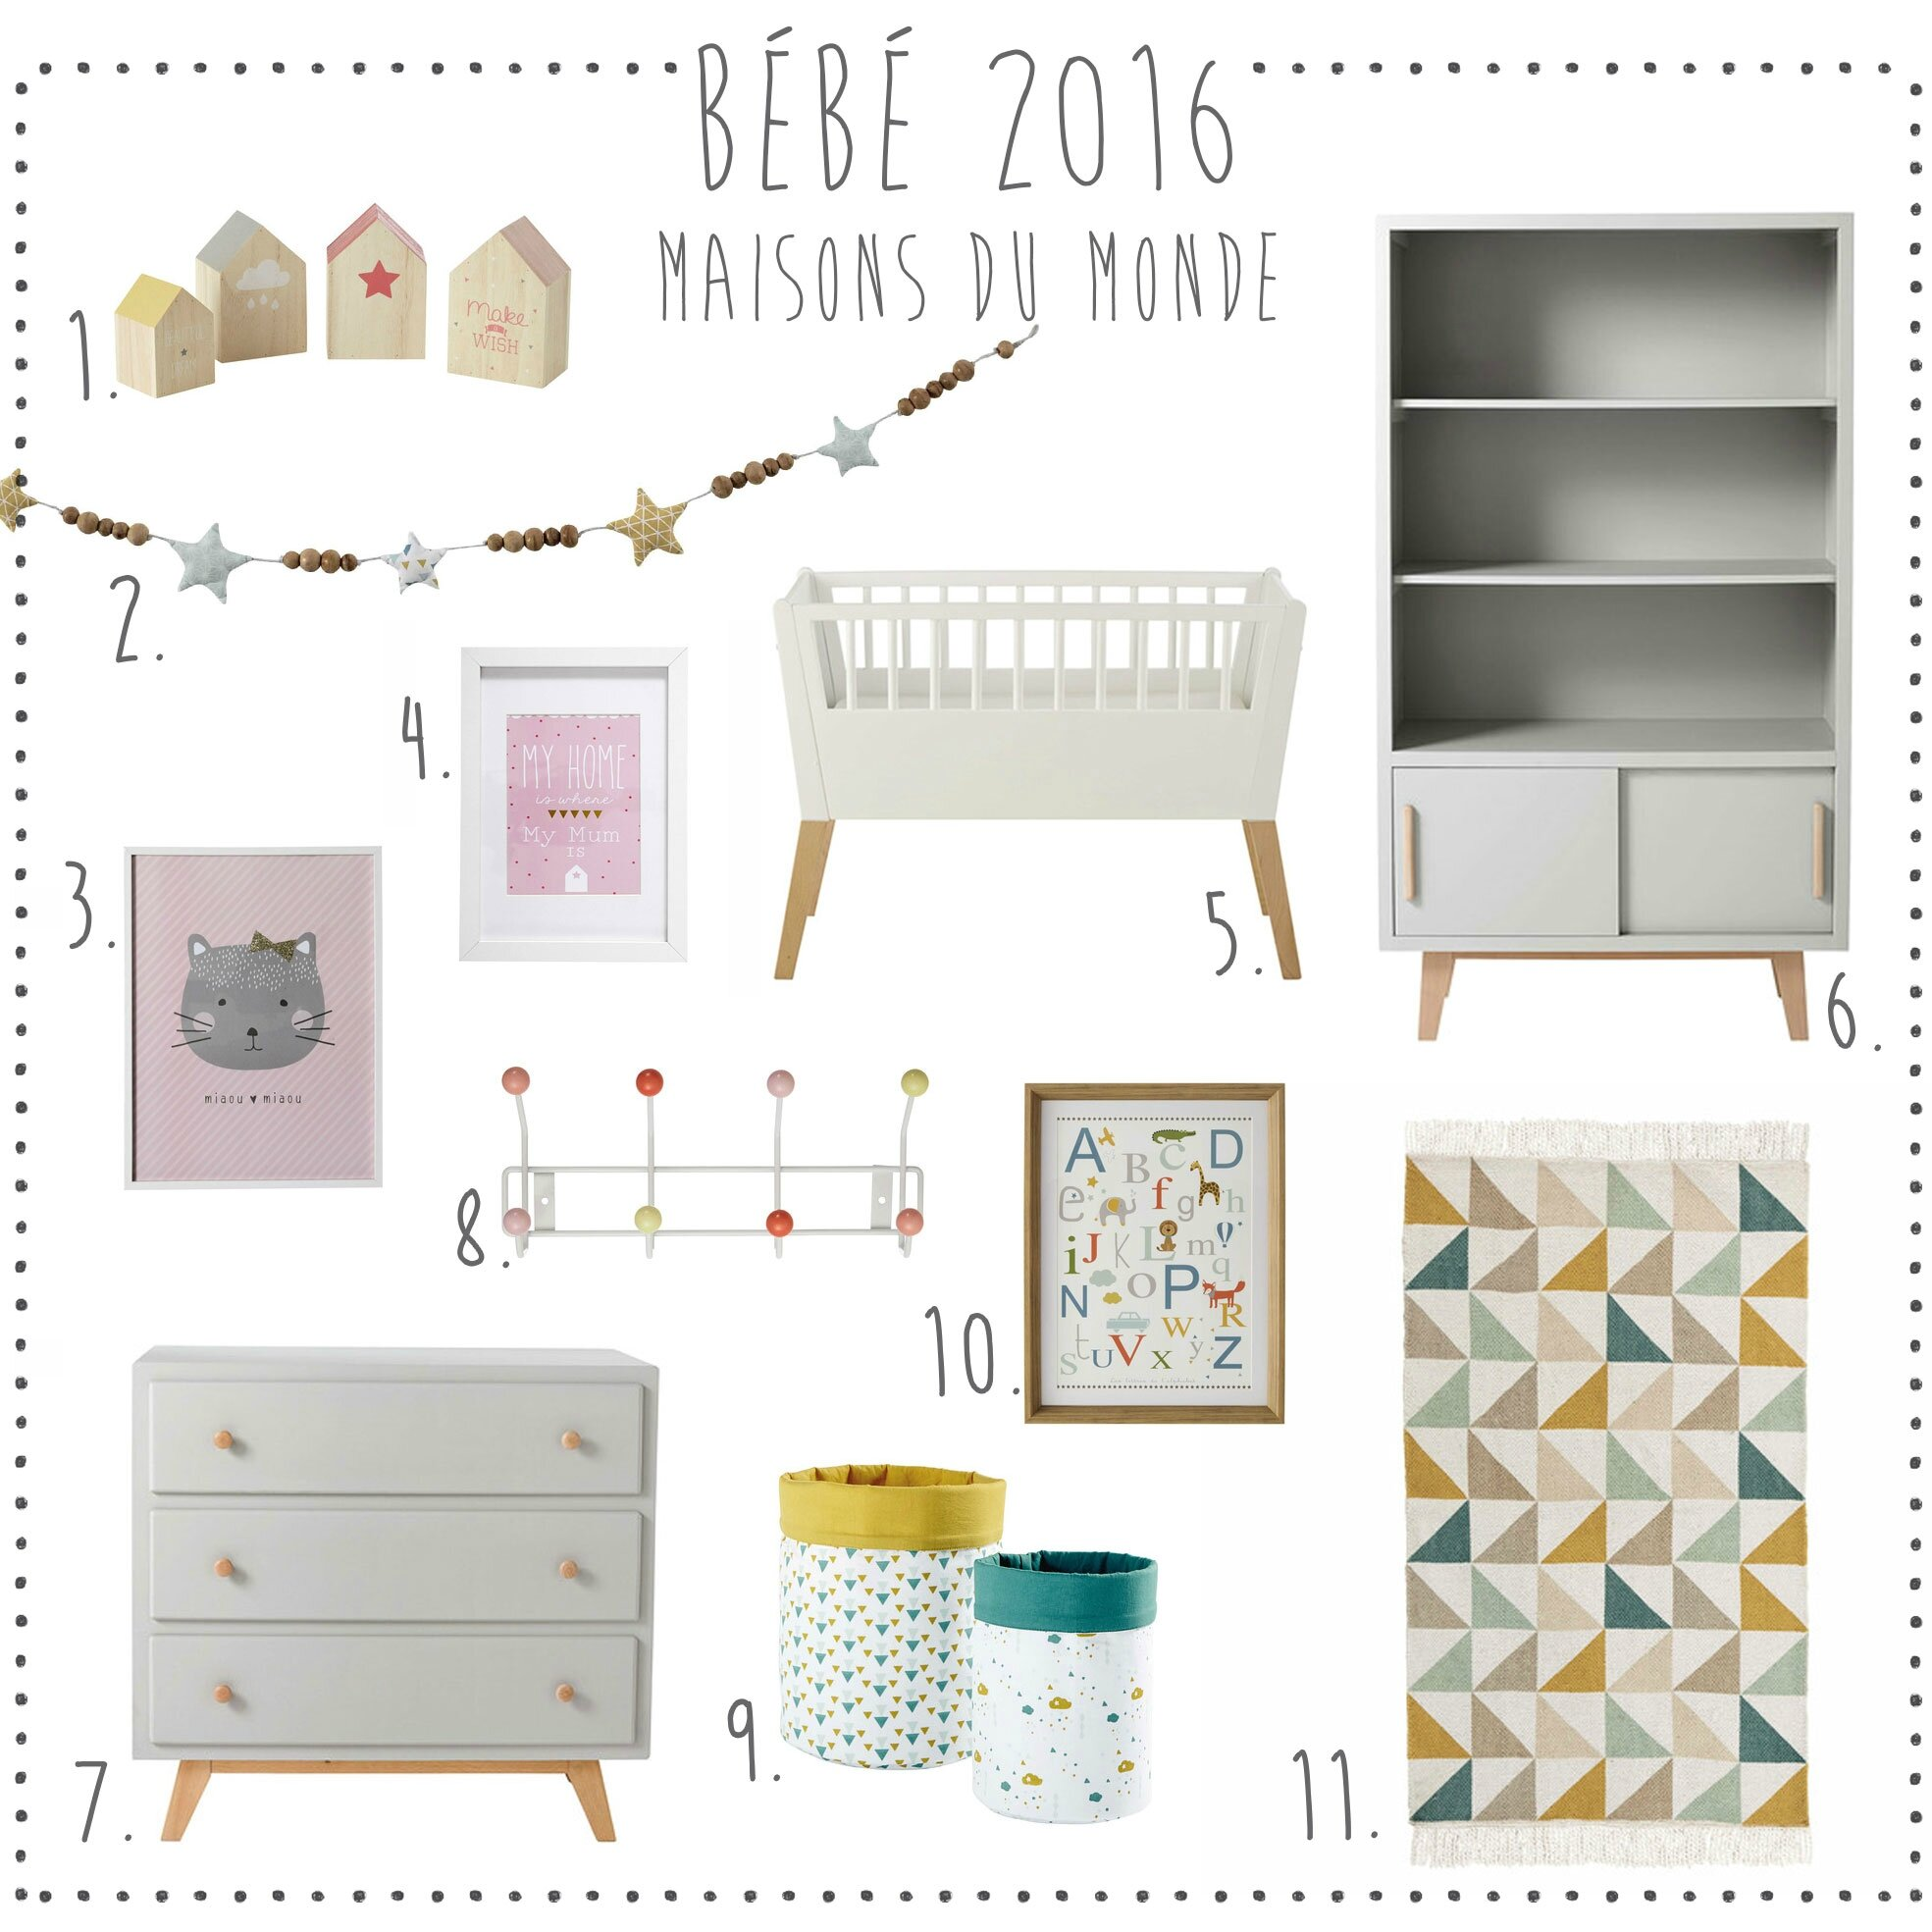 Nouveau catalogue junior 2016 maisons du monde deco for Catalogue chambre